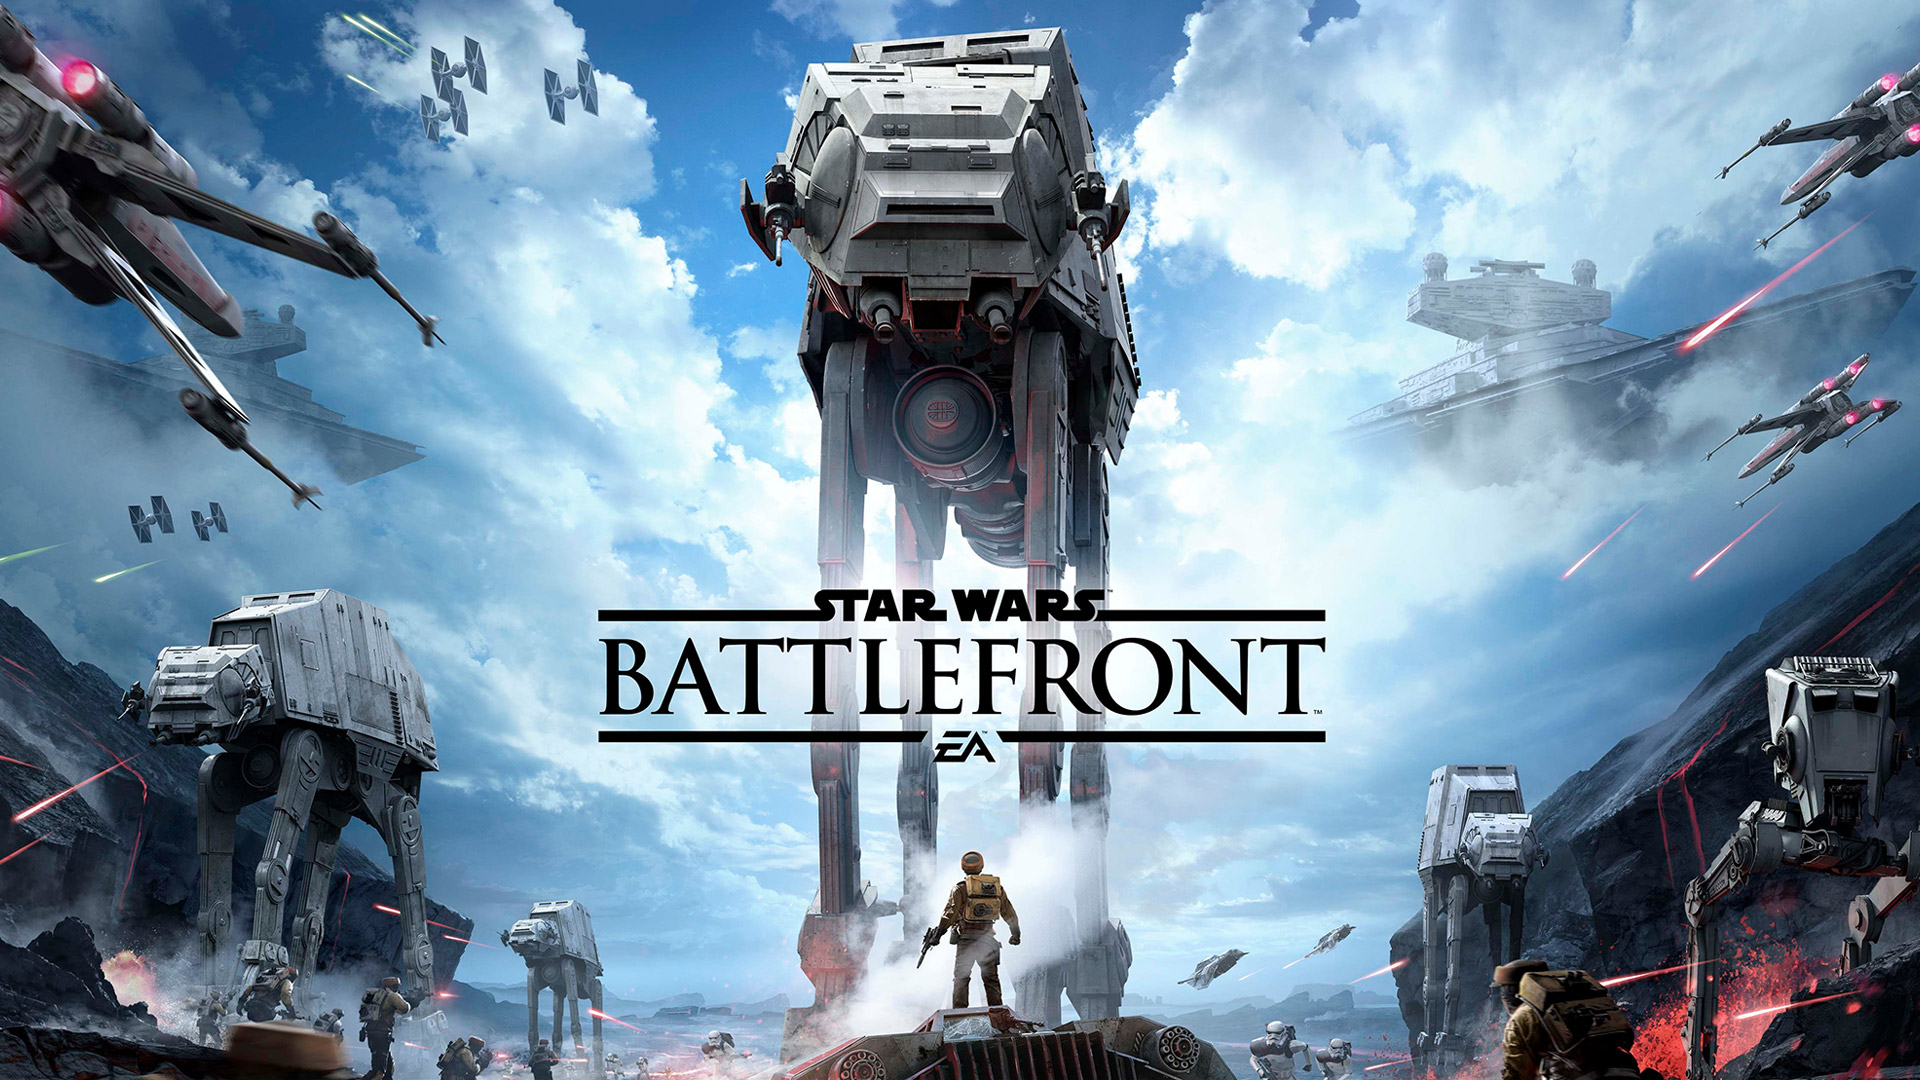 Star Wars Battlefront Wallpapers Video Game Hq Star Wars Battlefront Pictures 4k Wallpapers 2019